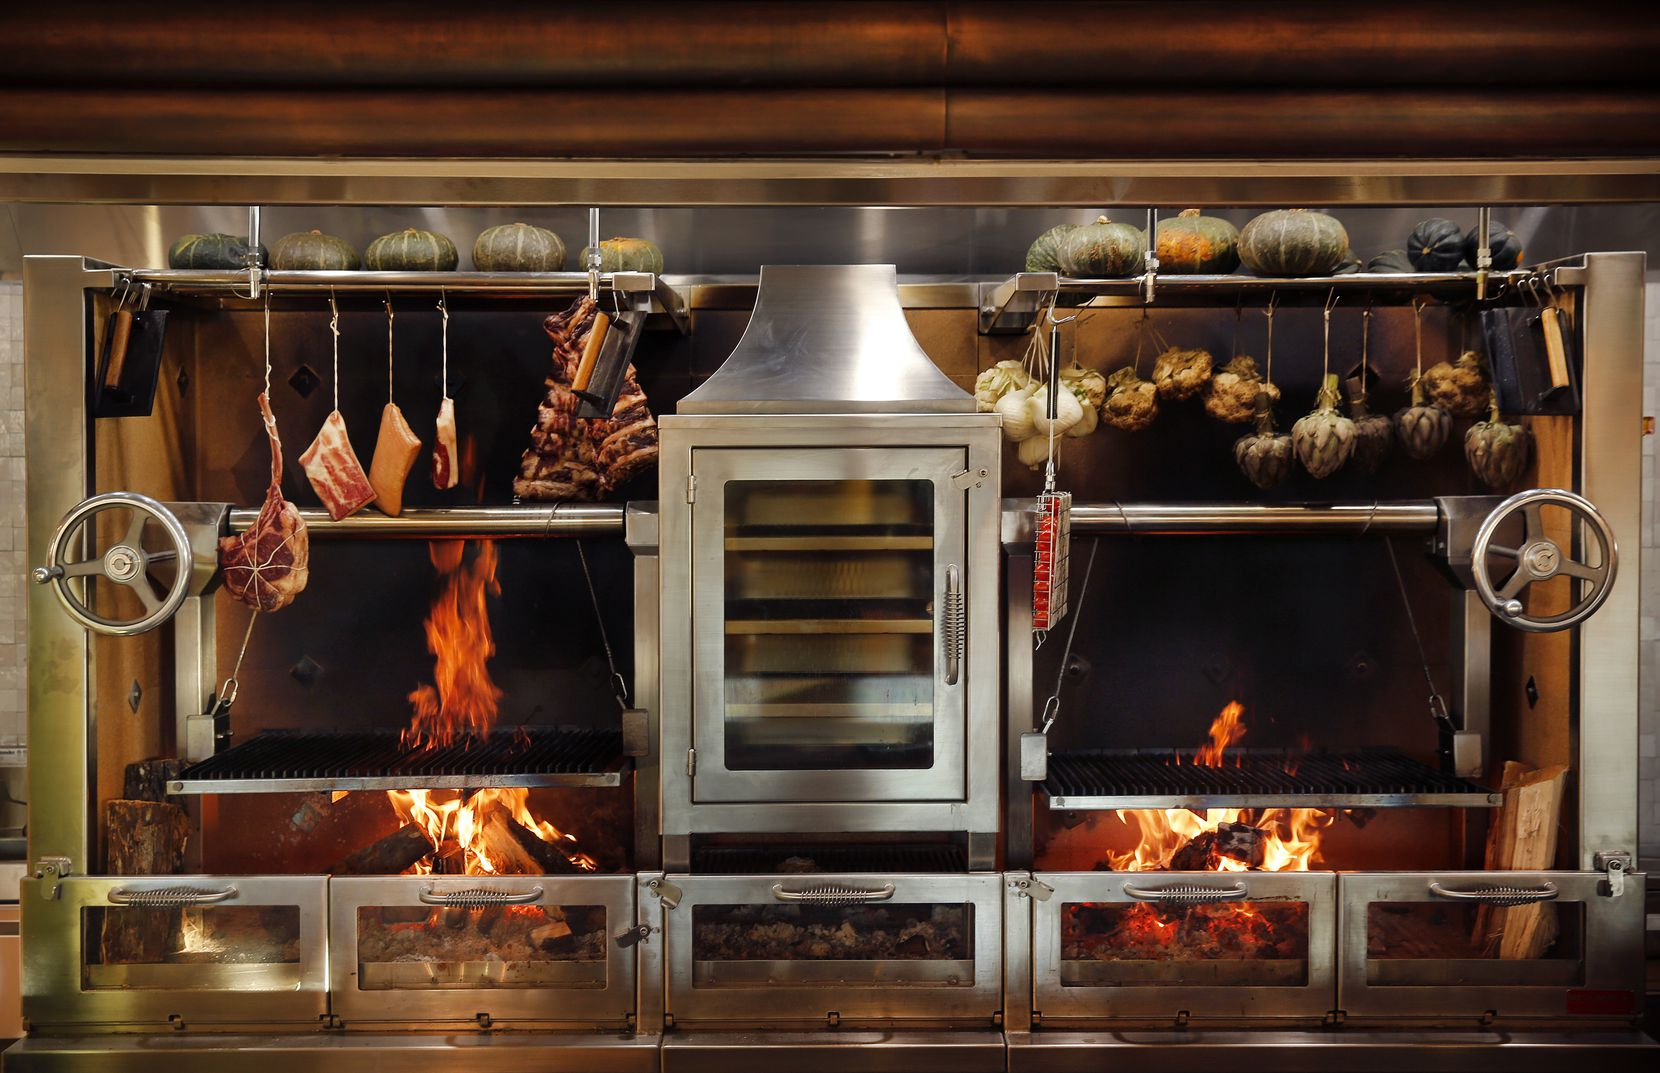 Most of the dishes at Eataly restaurant Terra are cooked on its open-hearth fire and grill.